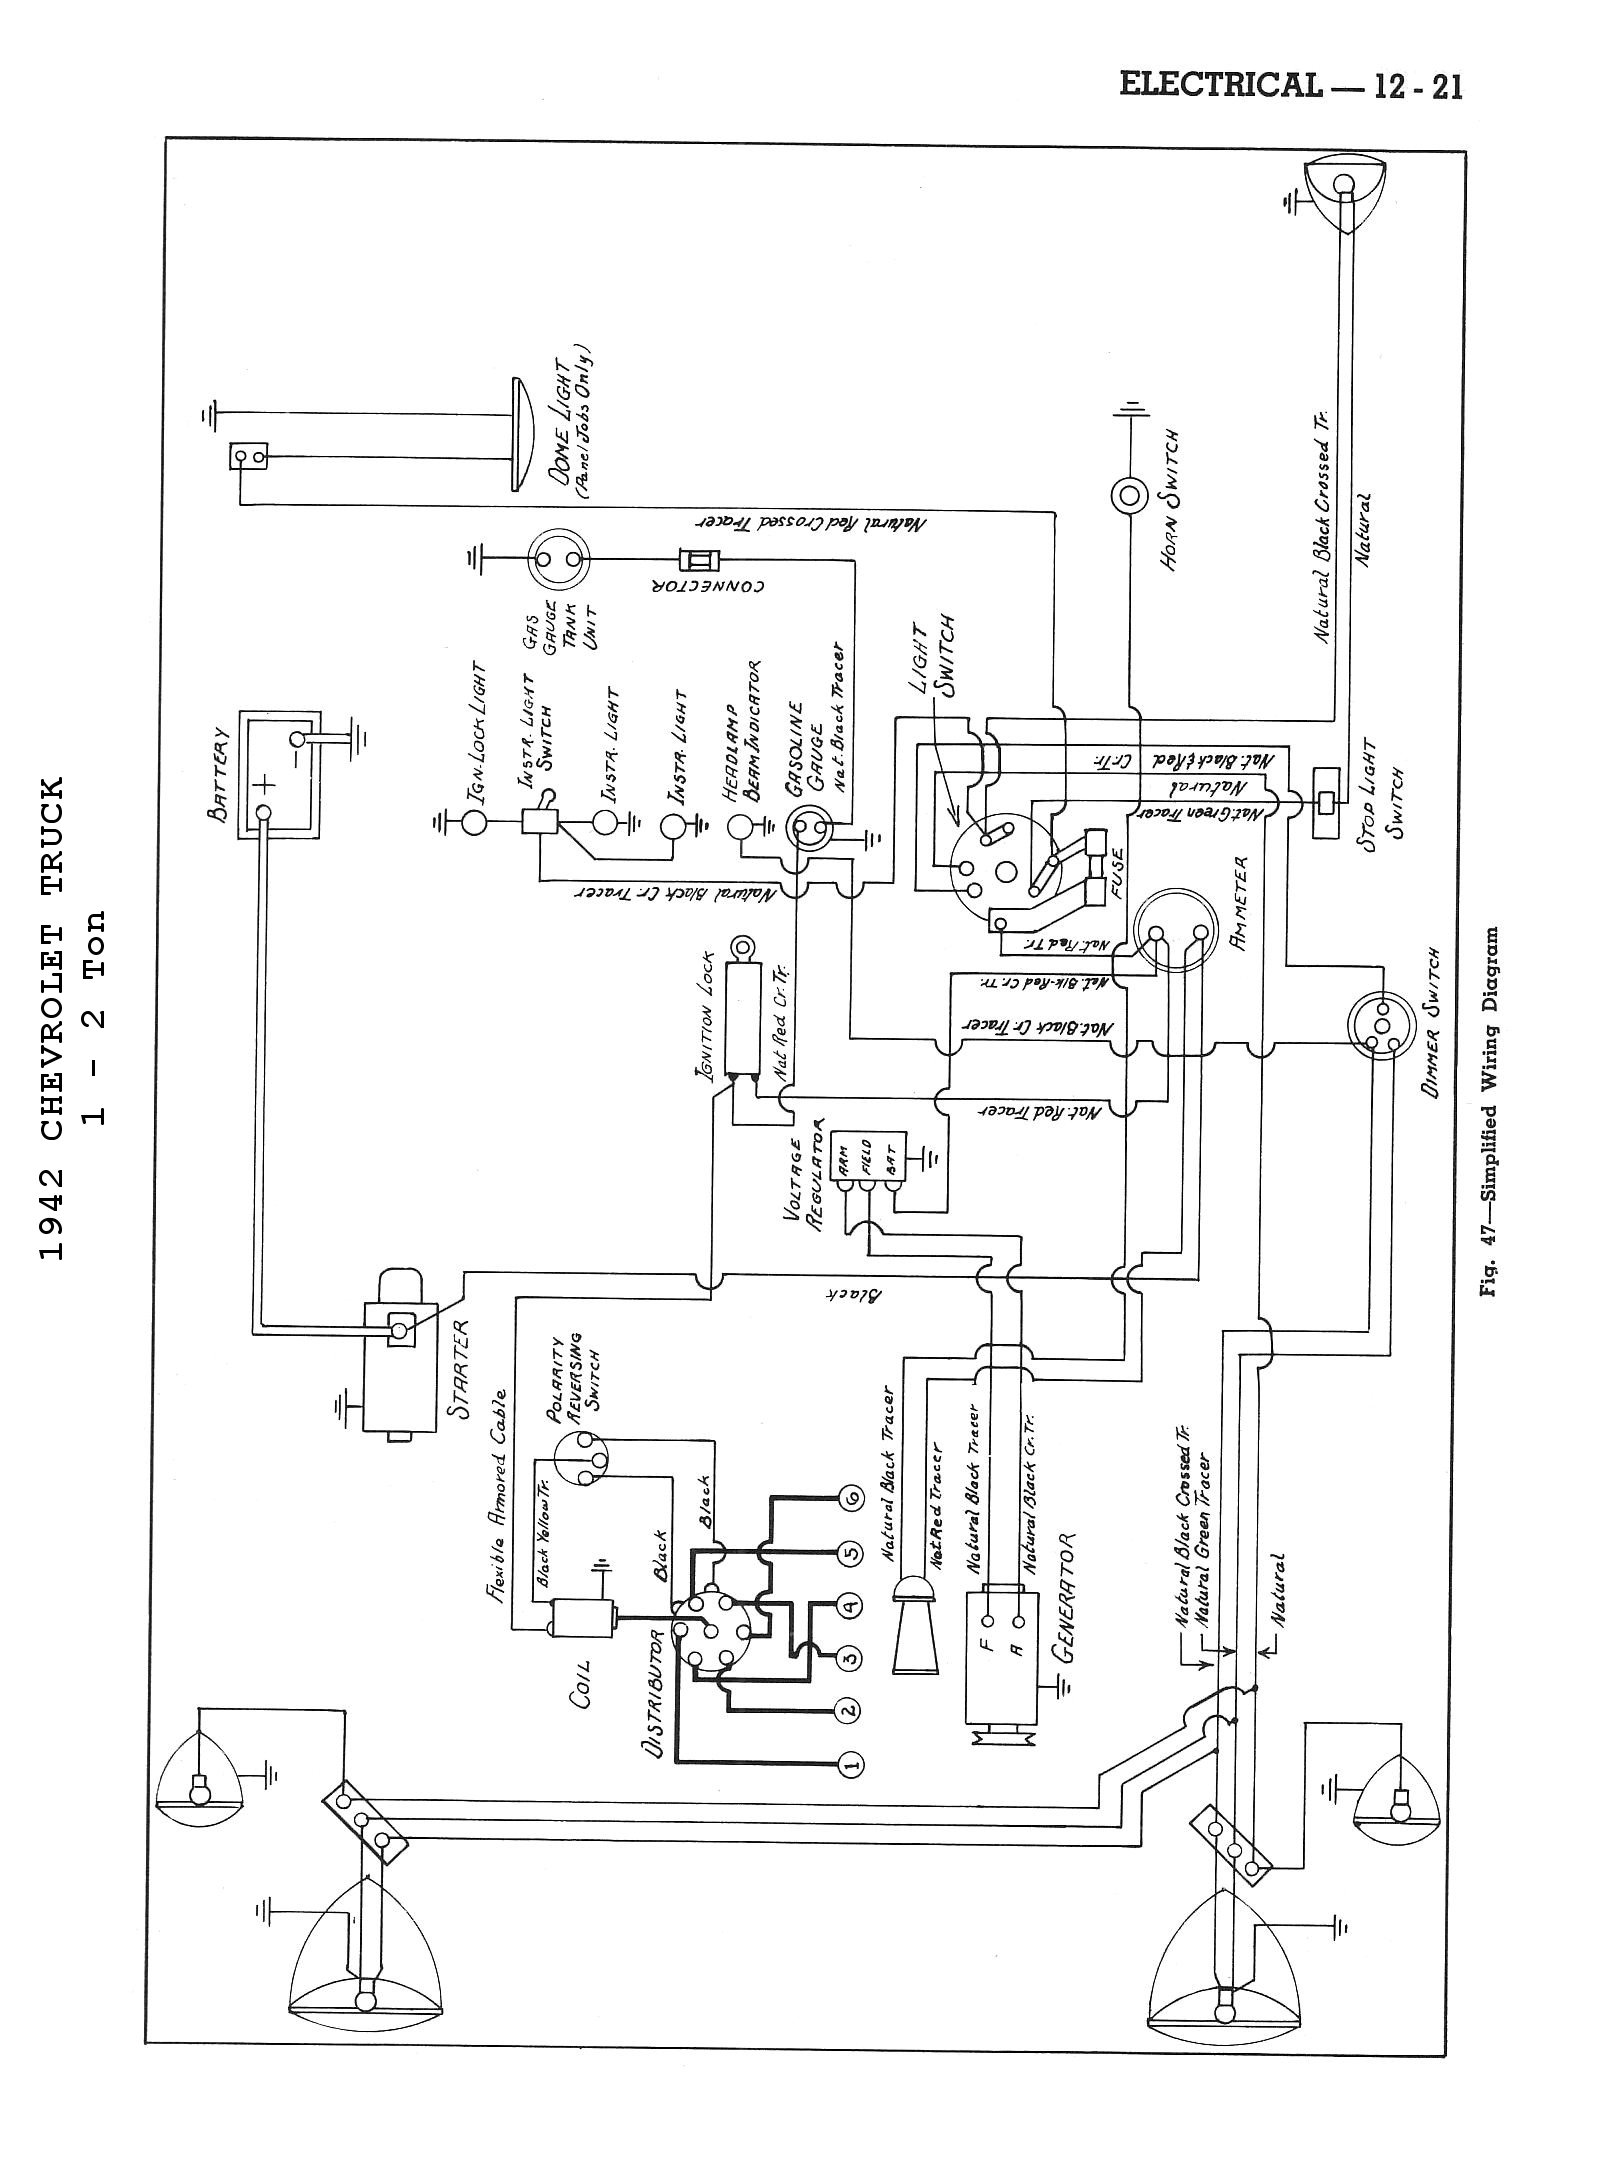 42cm4x2t1221 chevy wiring diagrams turn signal wiring diagram chevy truck at alyssarenee.co